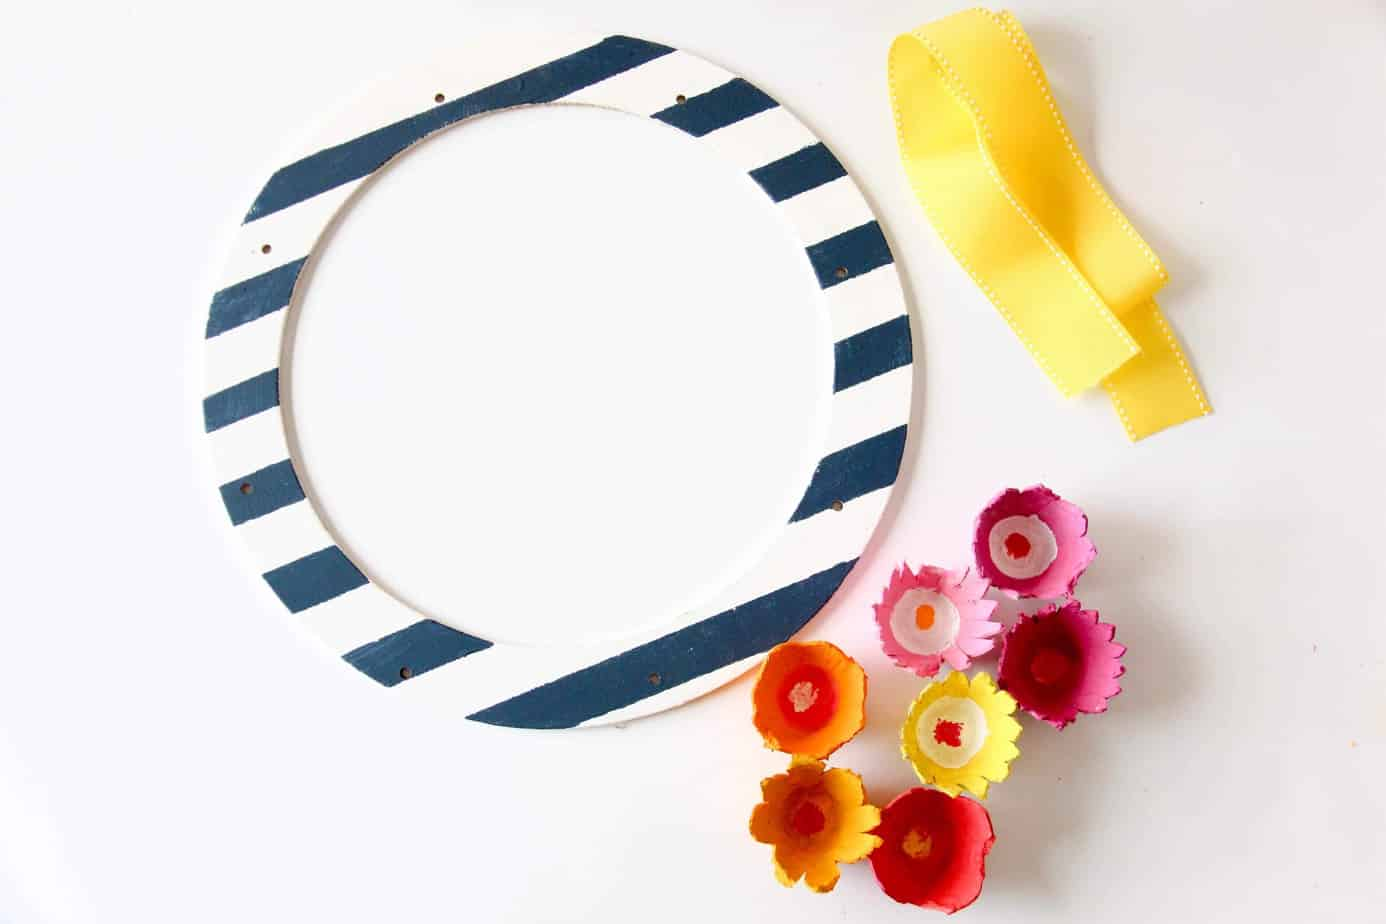 painted wreath with flowers